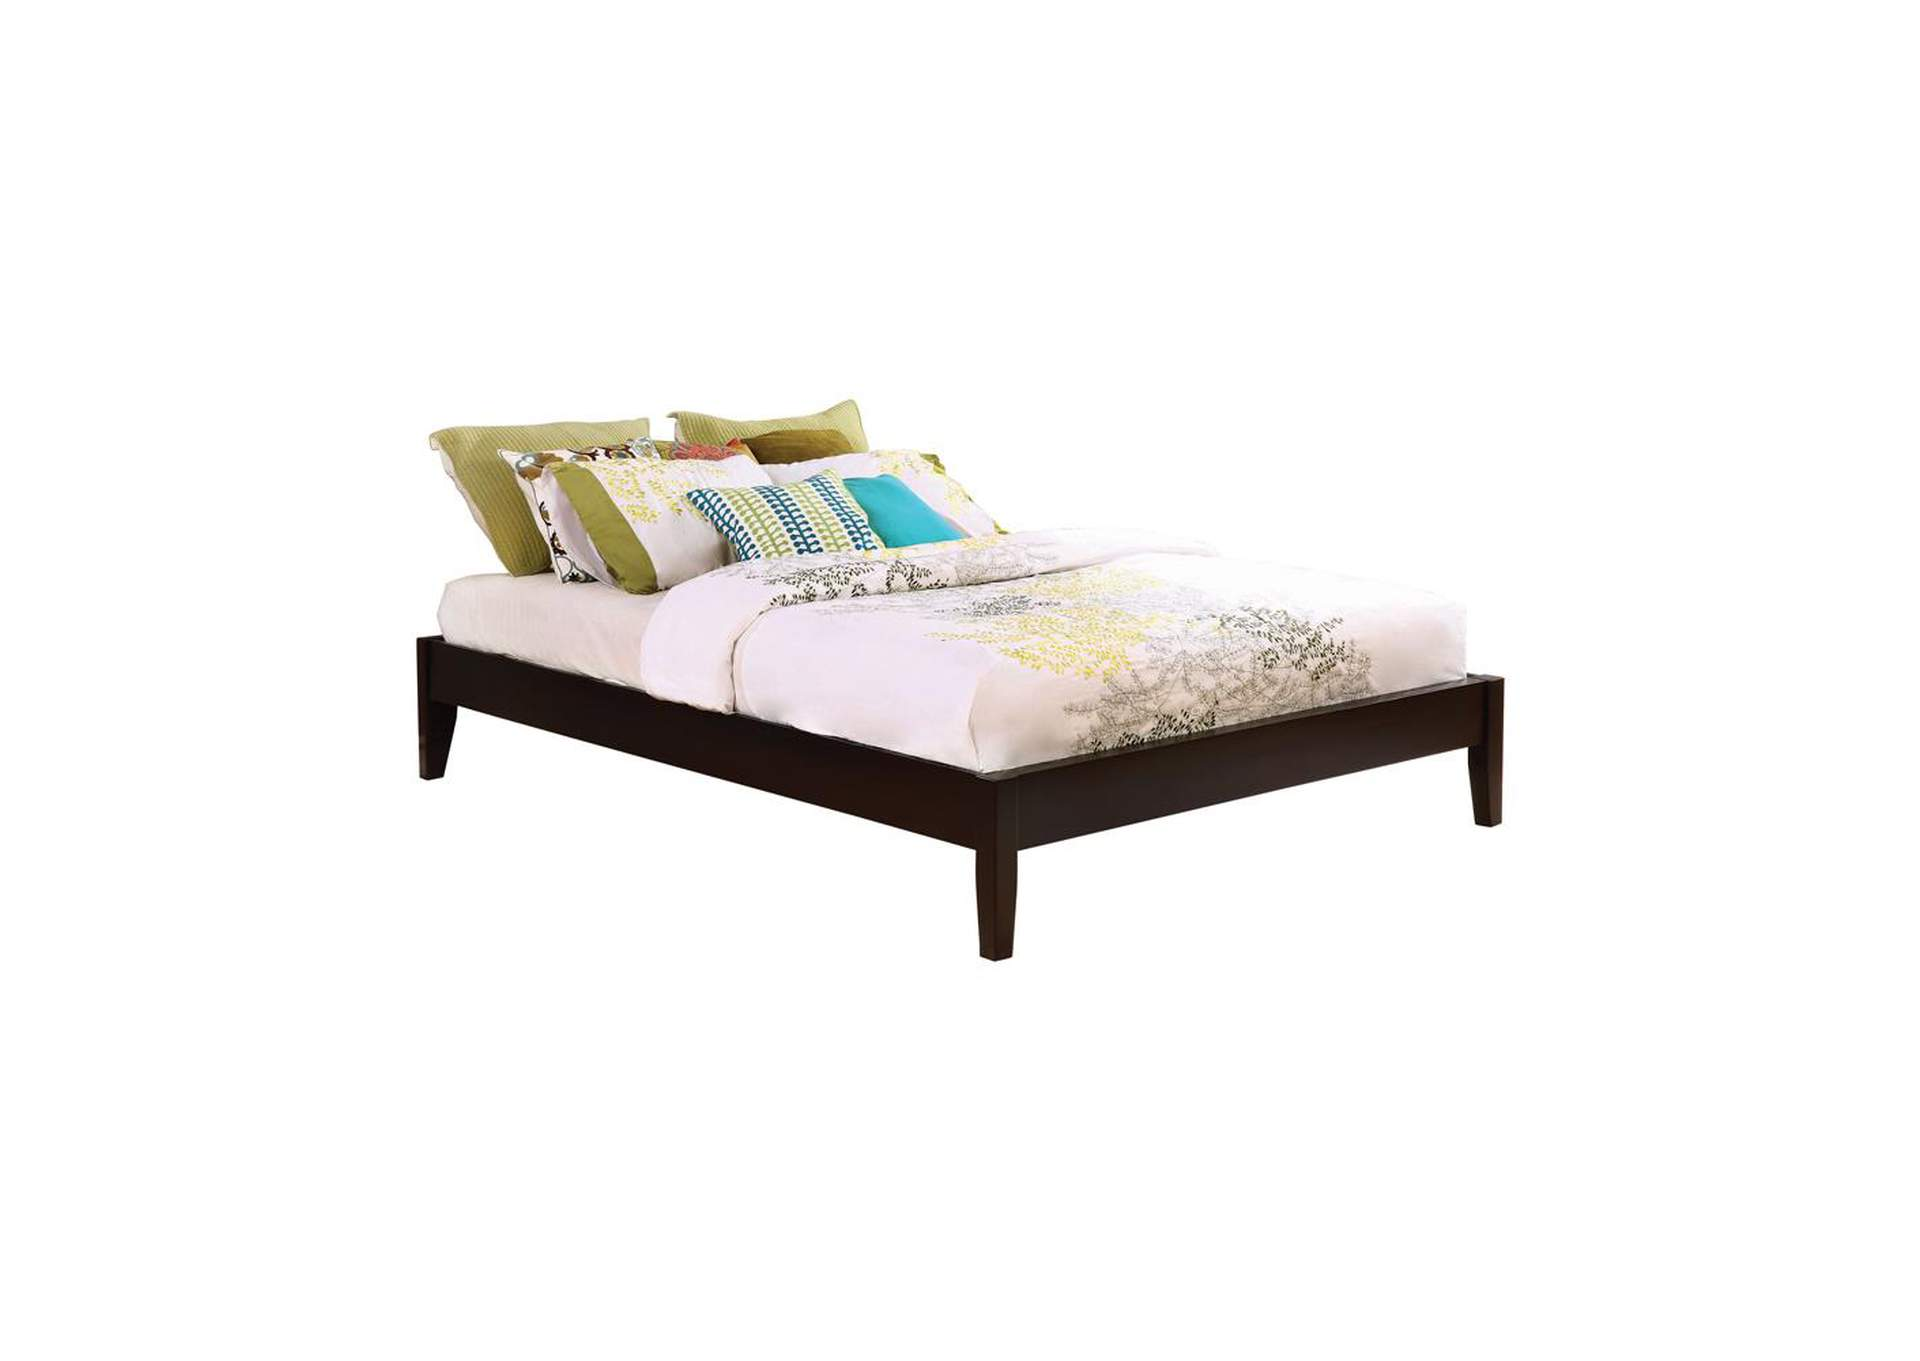 Lola Hounslow Cappuccino Queen Platform Bed,Coaster Furniture